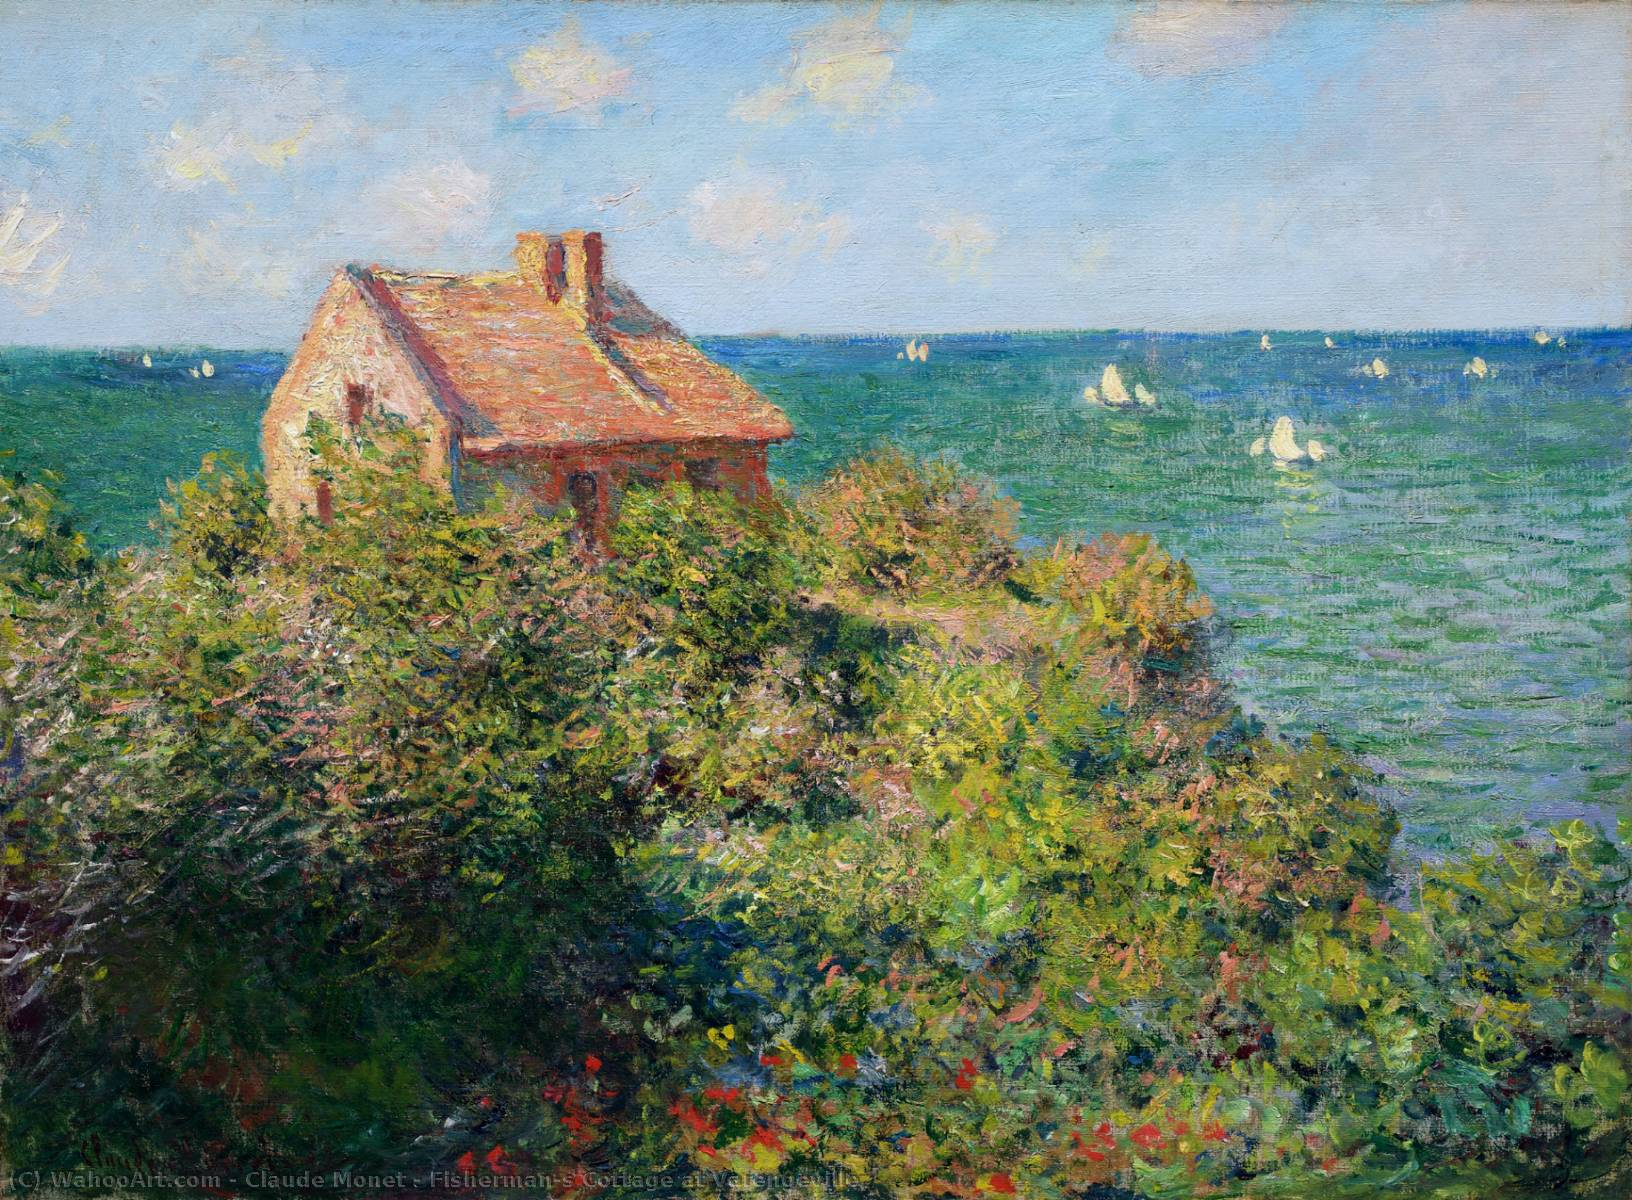 famous painting Fisherman's Cottage at Varengeville of Claude Monet